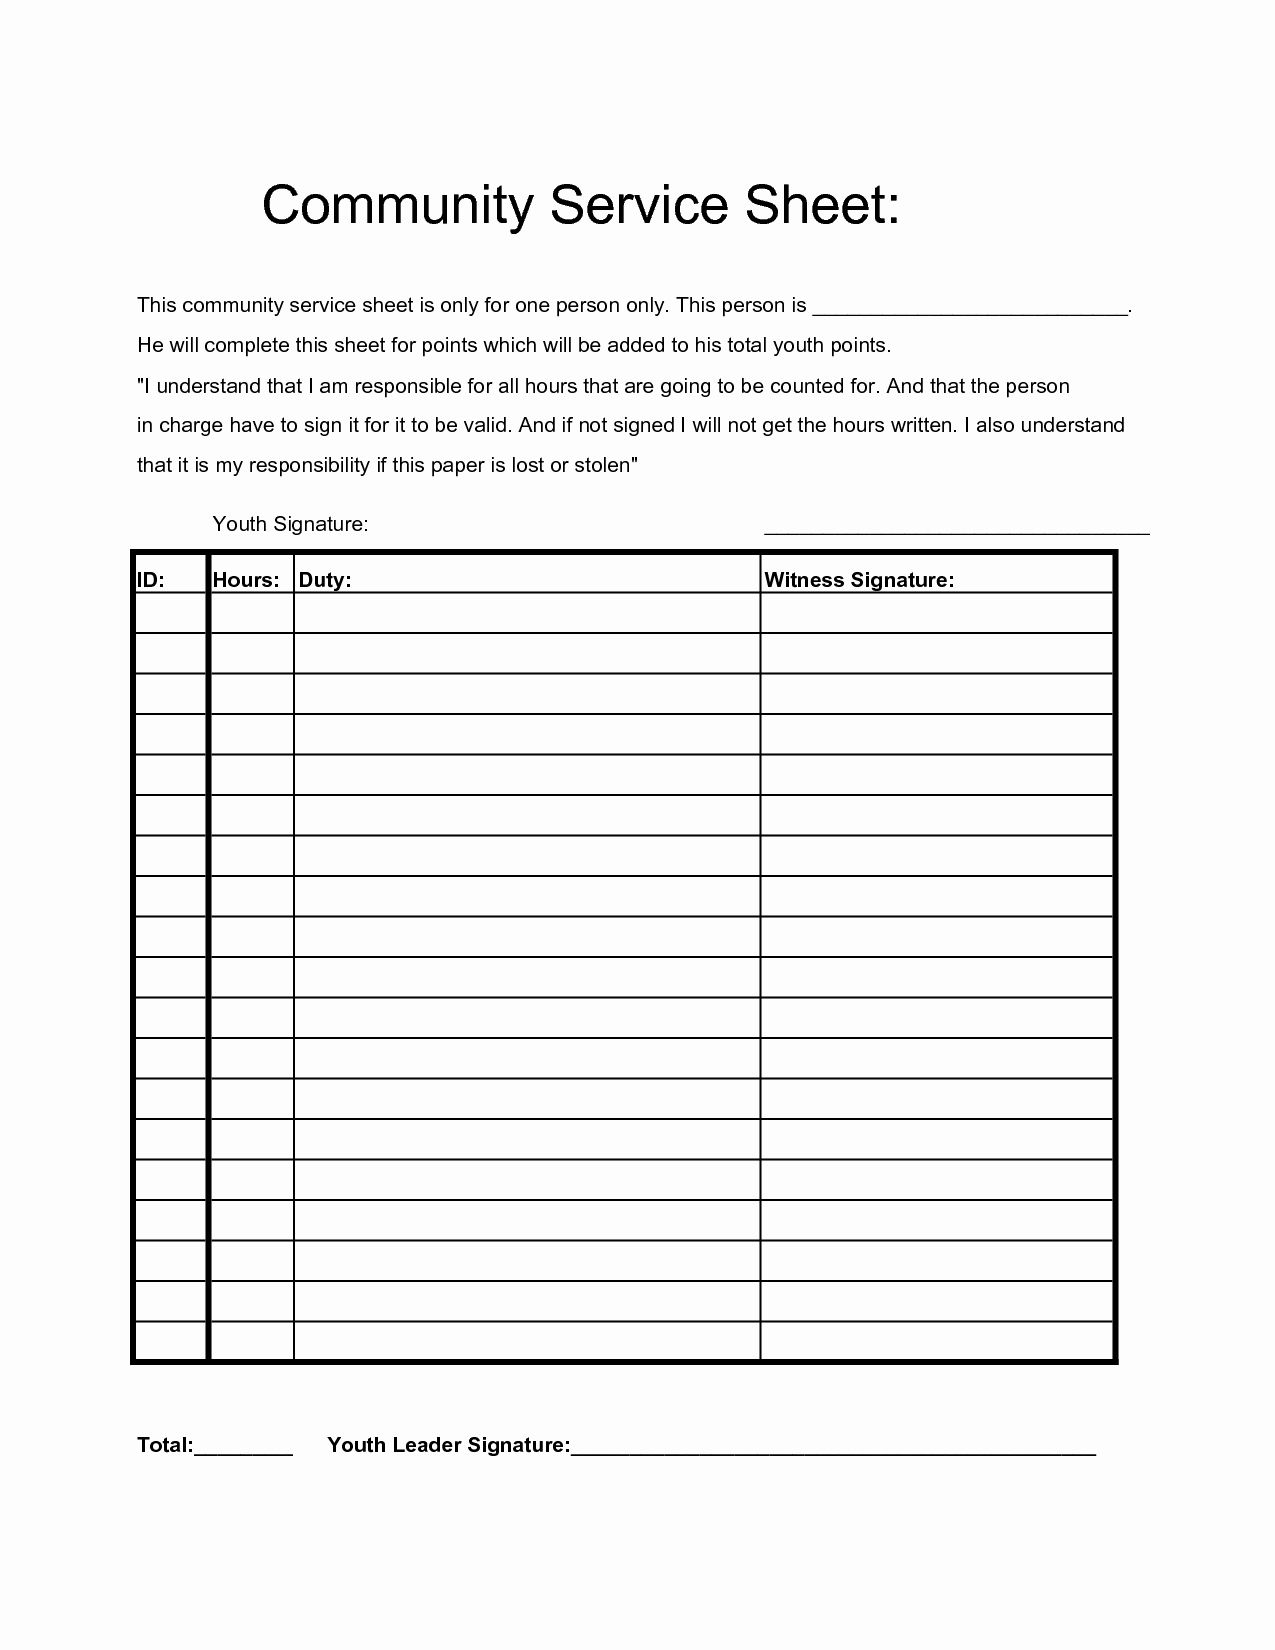 Community Service Hours Form Template Beautiful Munity Service Hours Sheet Community Service Hours Volunteer Hours Community Service